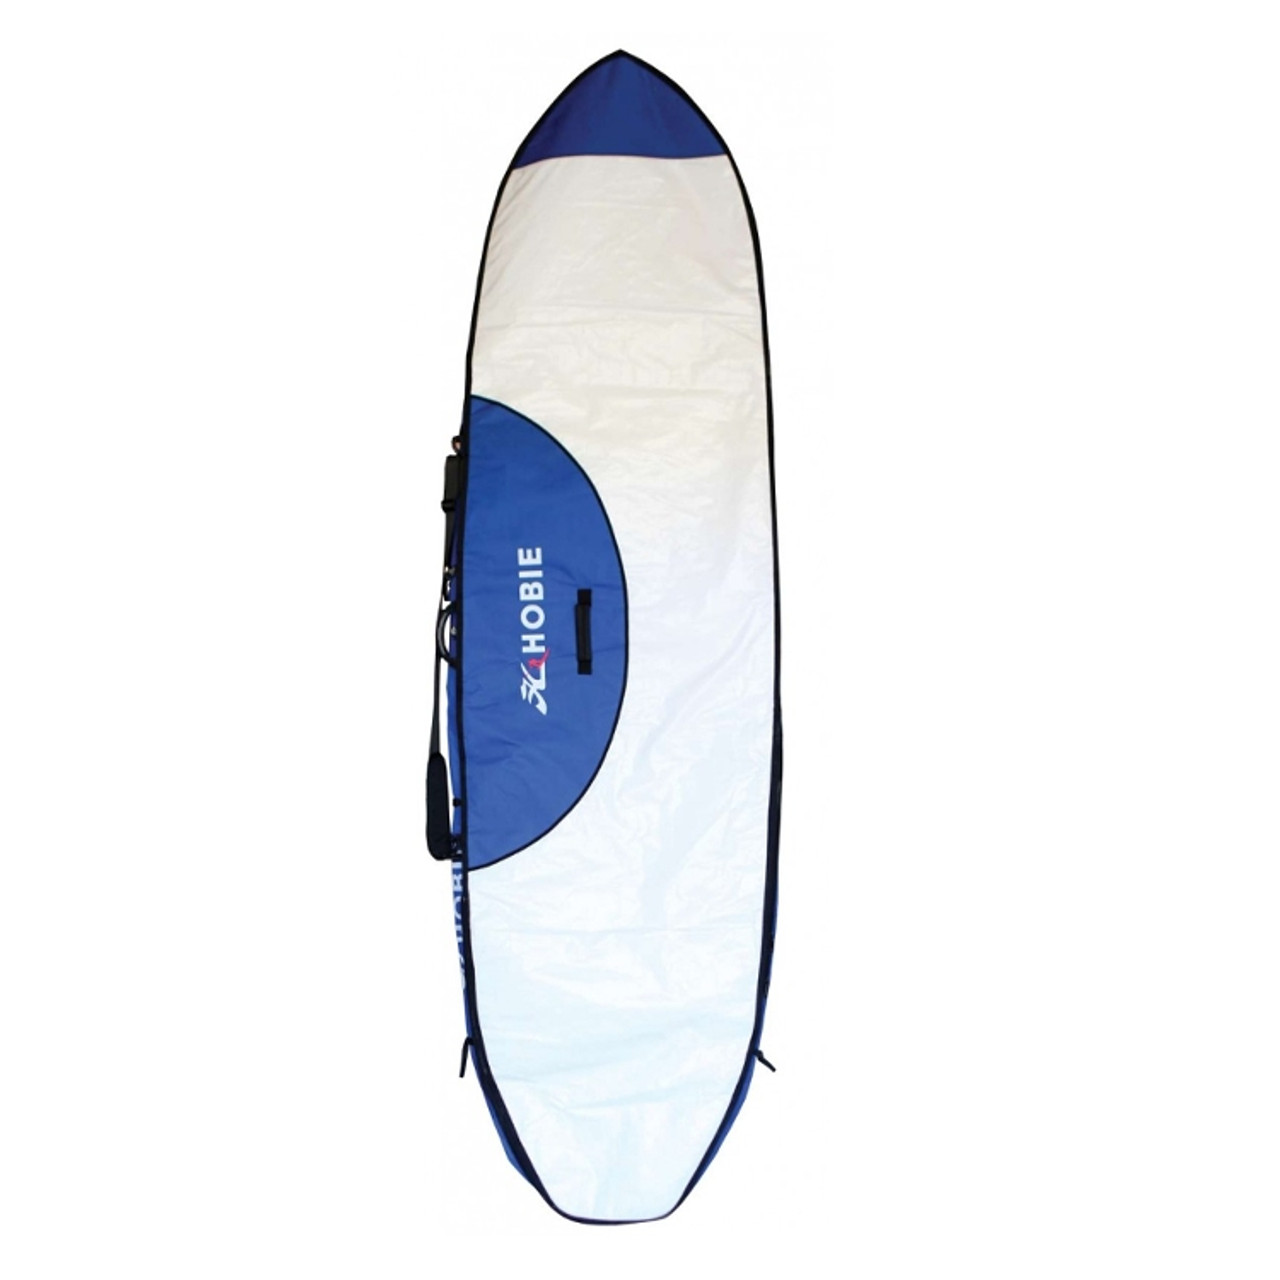 Standup paddleboard accessories